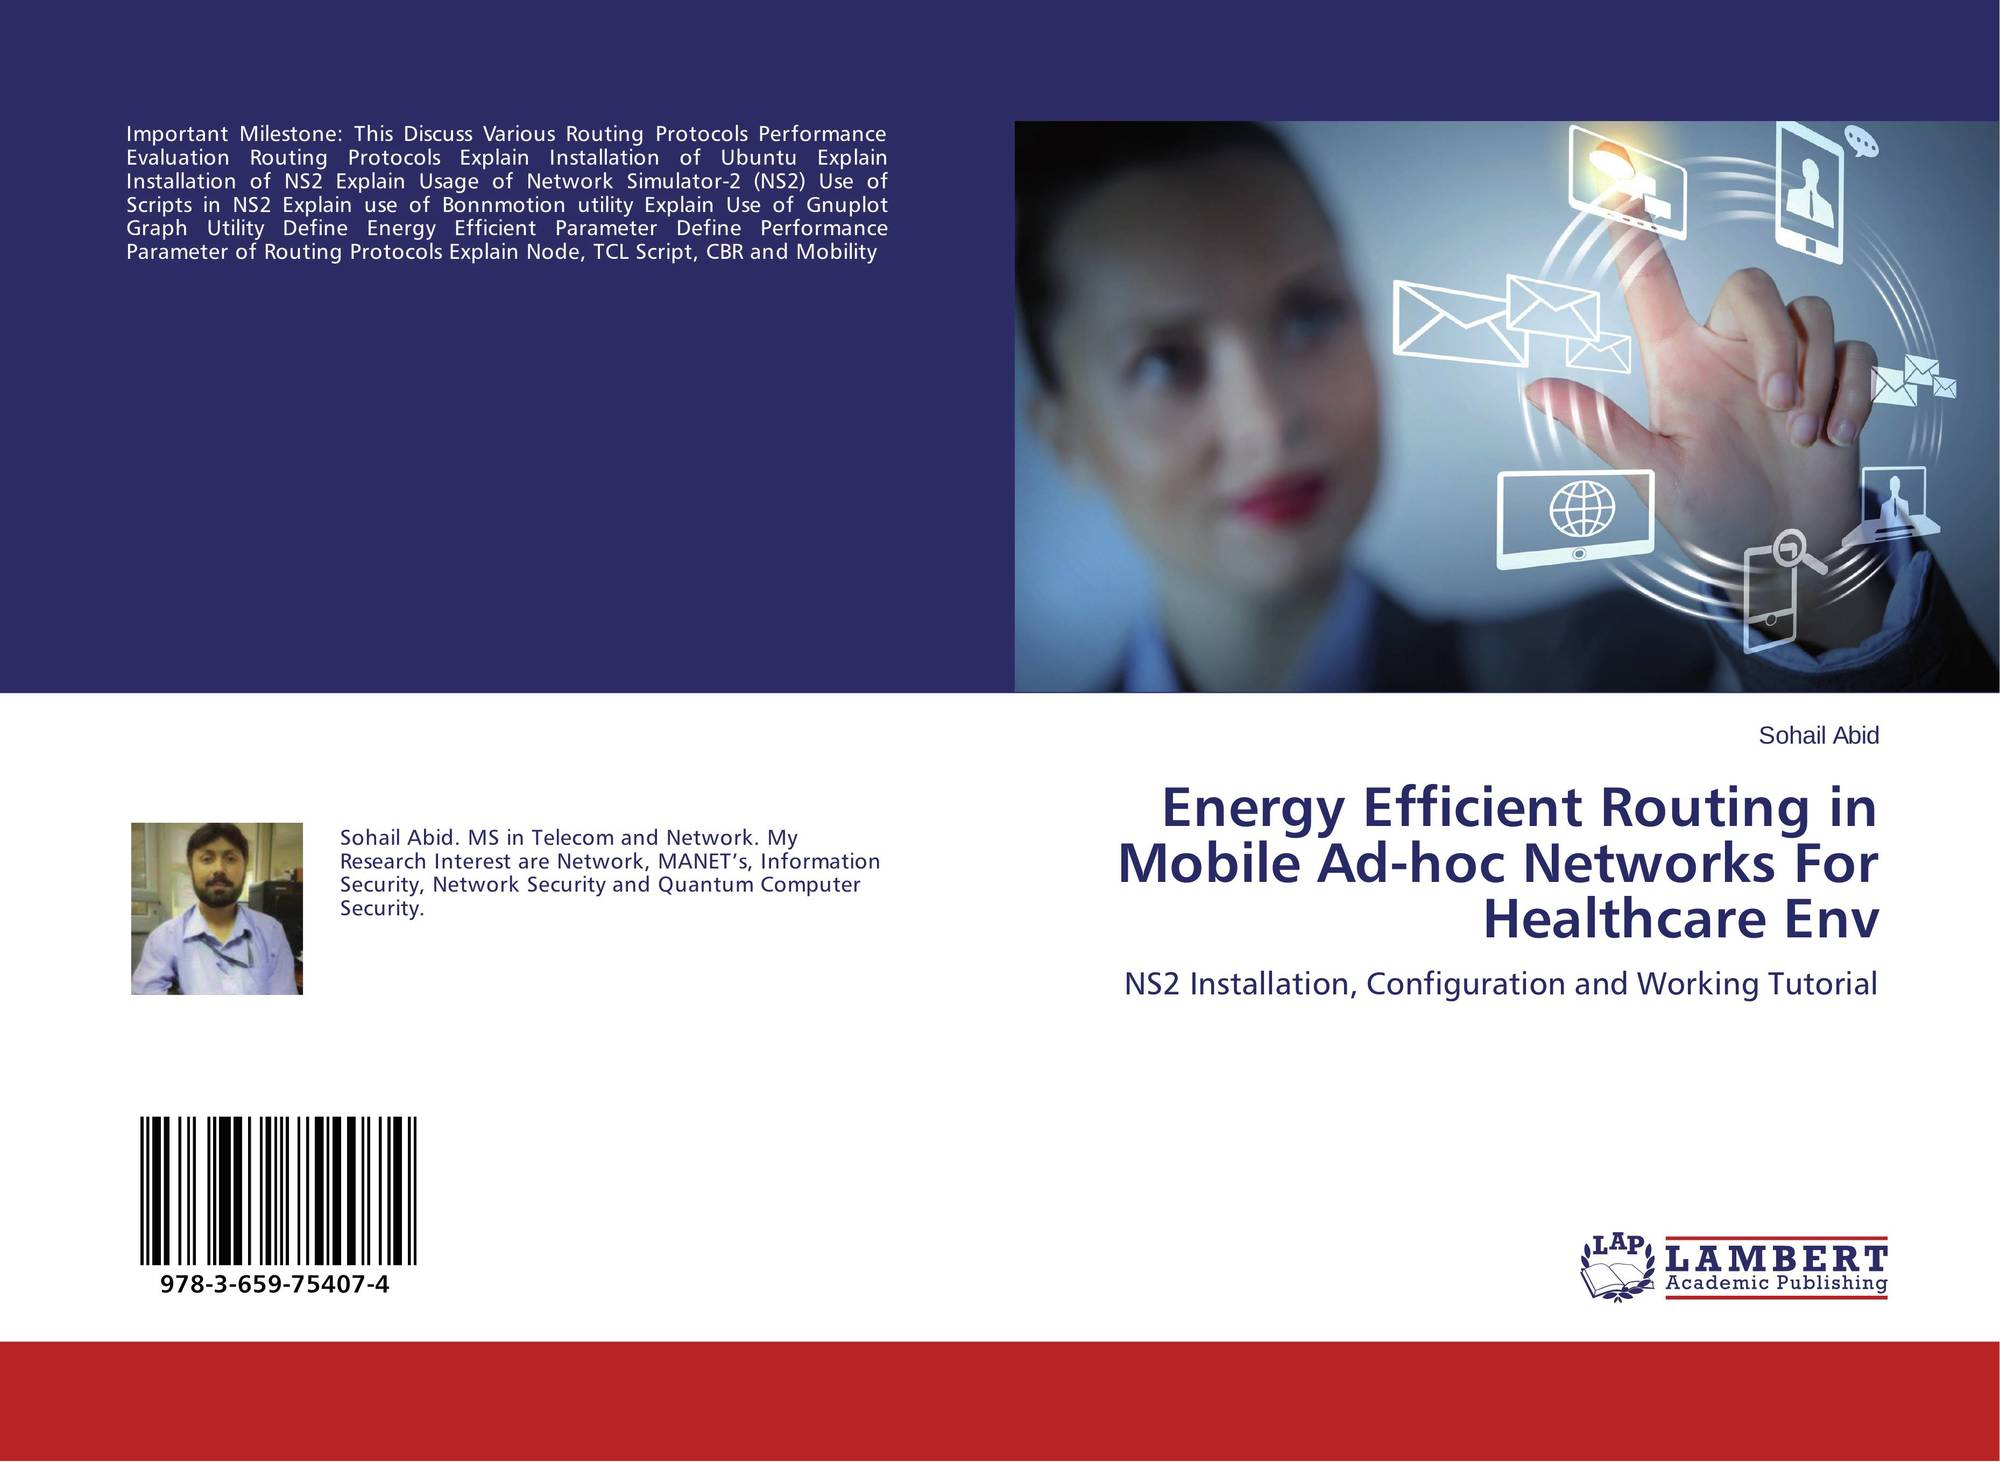 Energy Efficient Routing in Mobile Ad-hoc Networks For